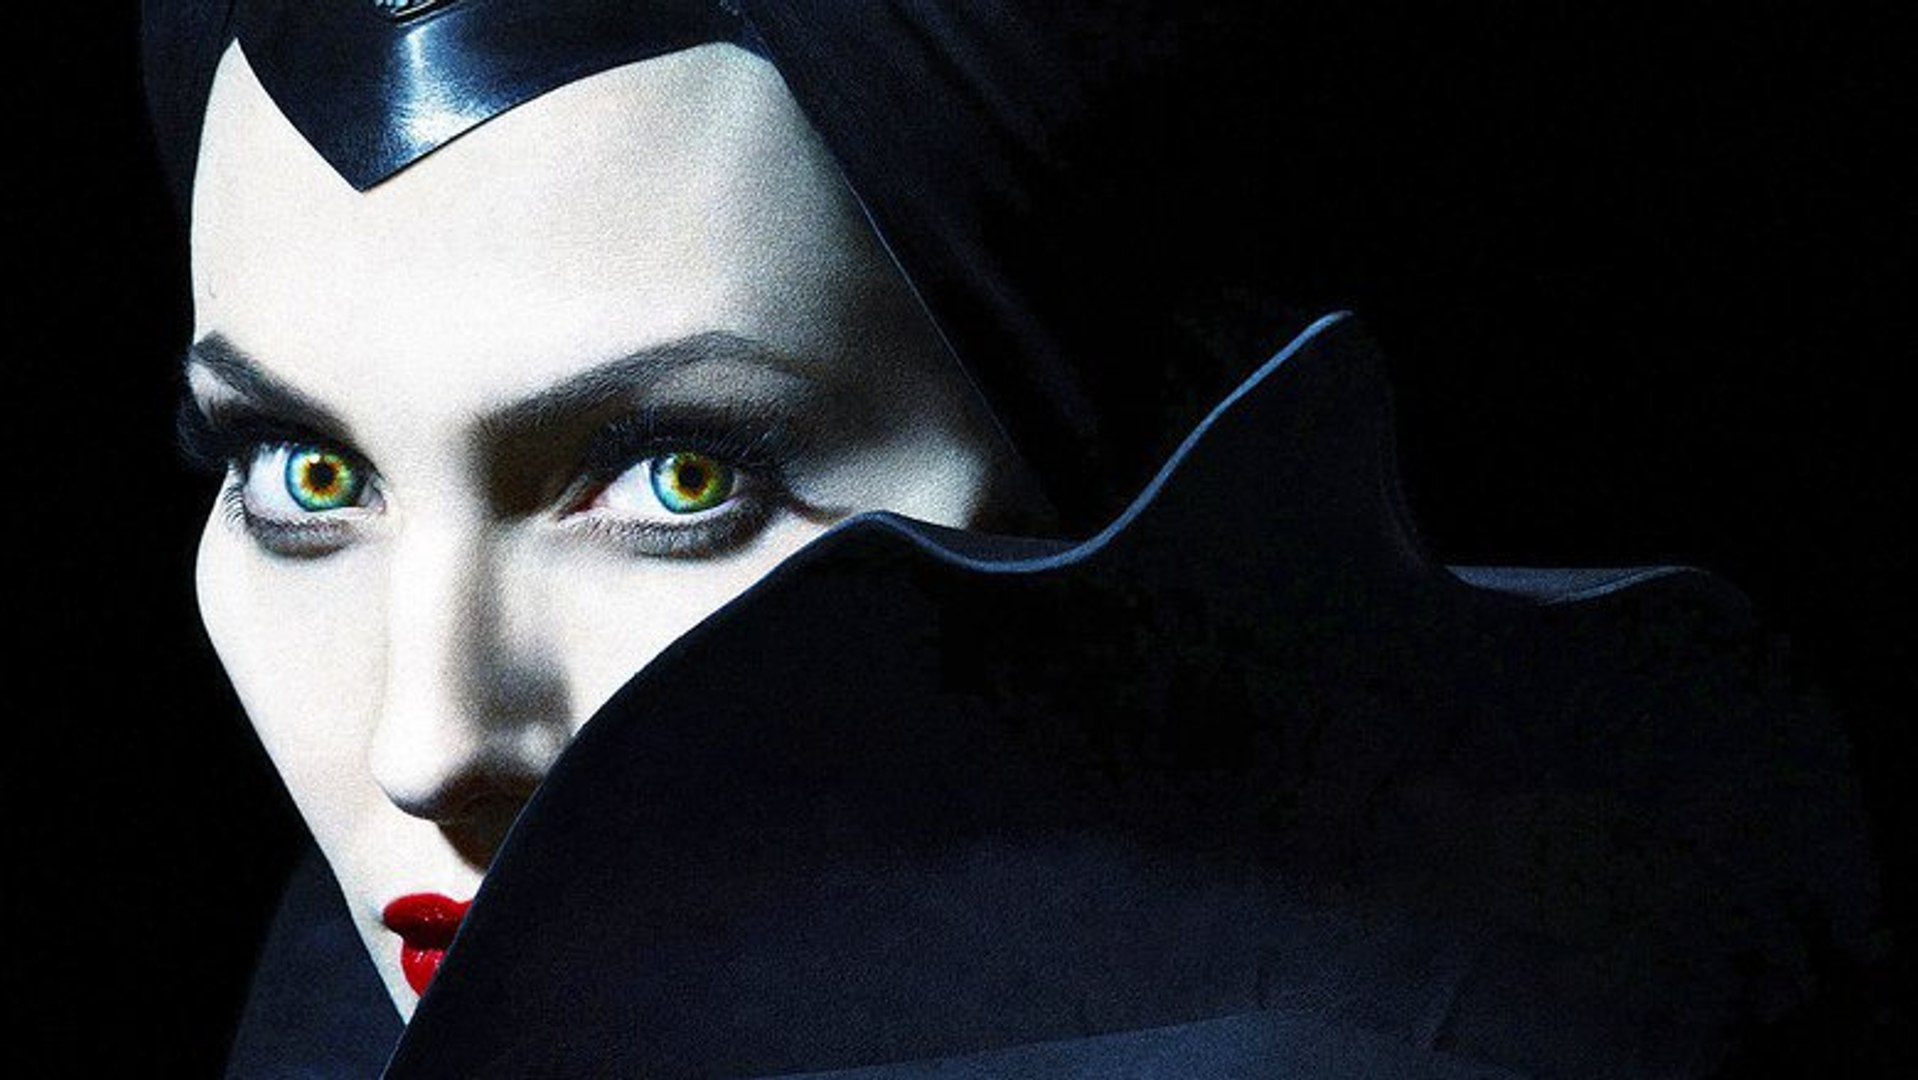 Maleficent Full Movie Hd 1080p Quality